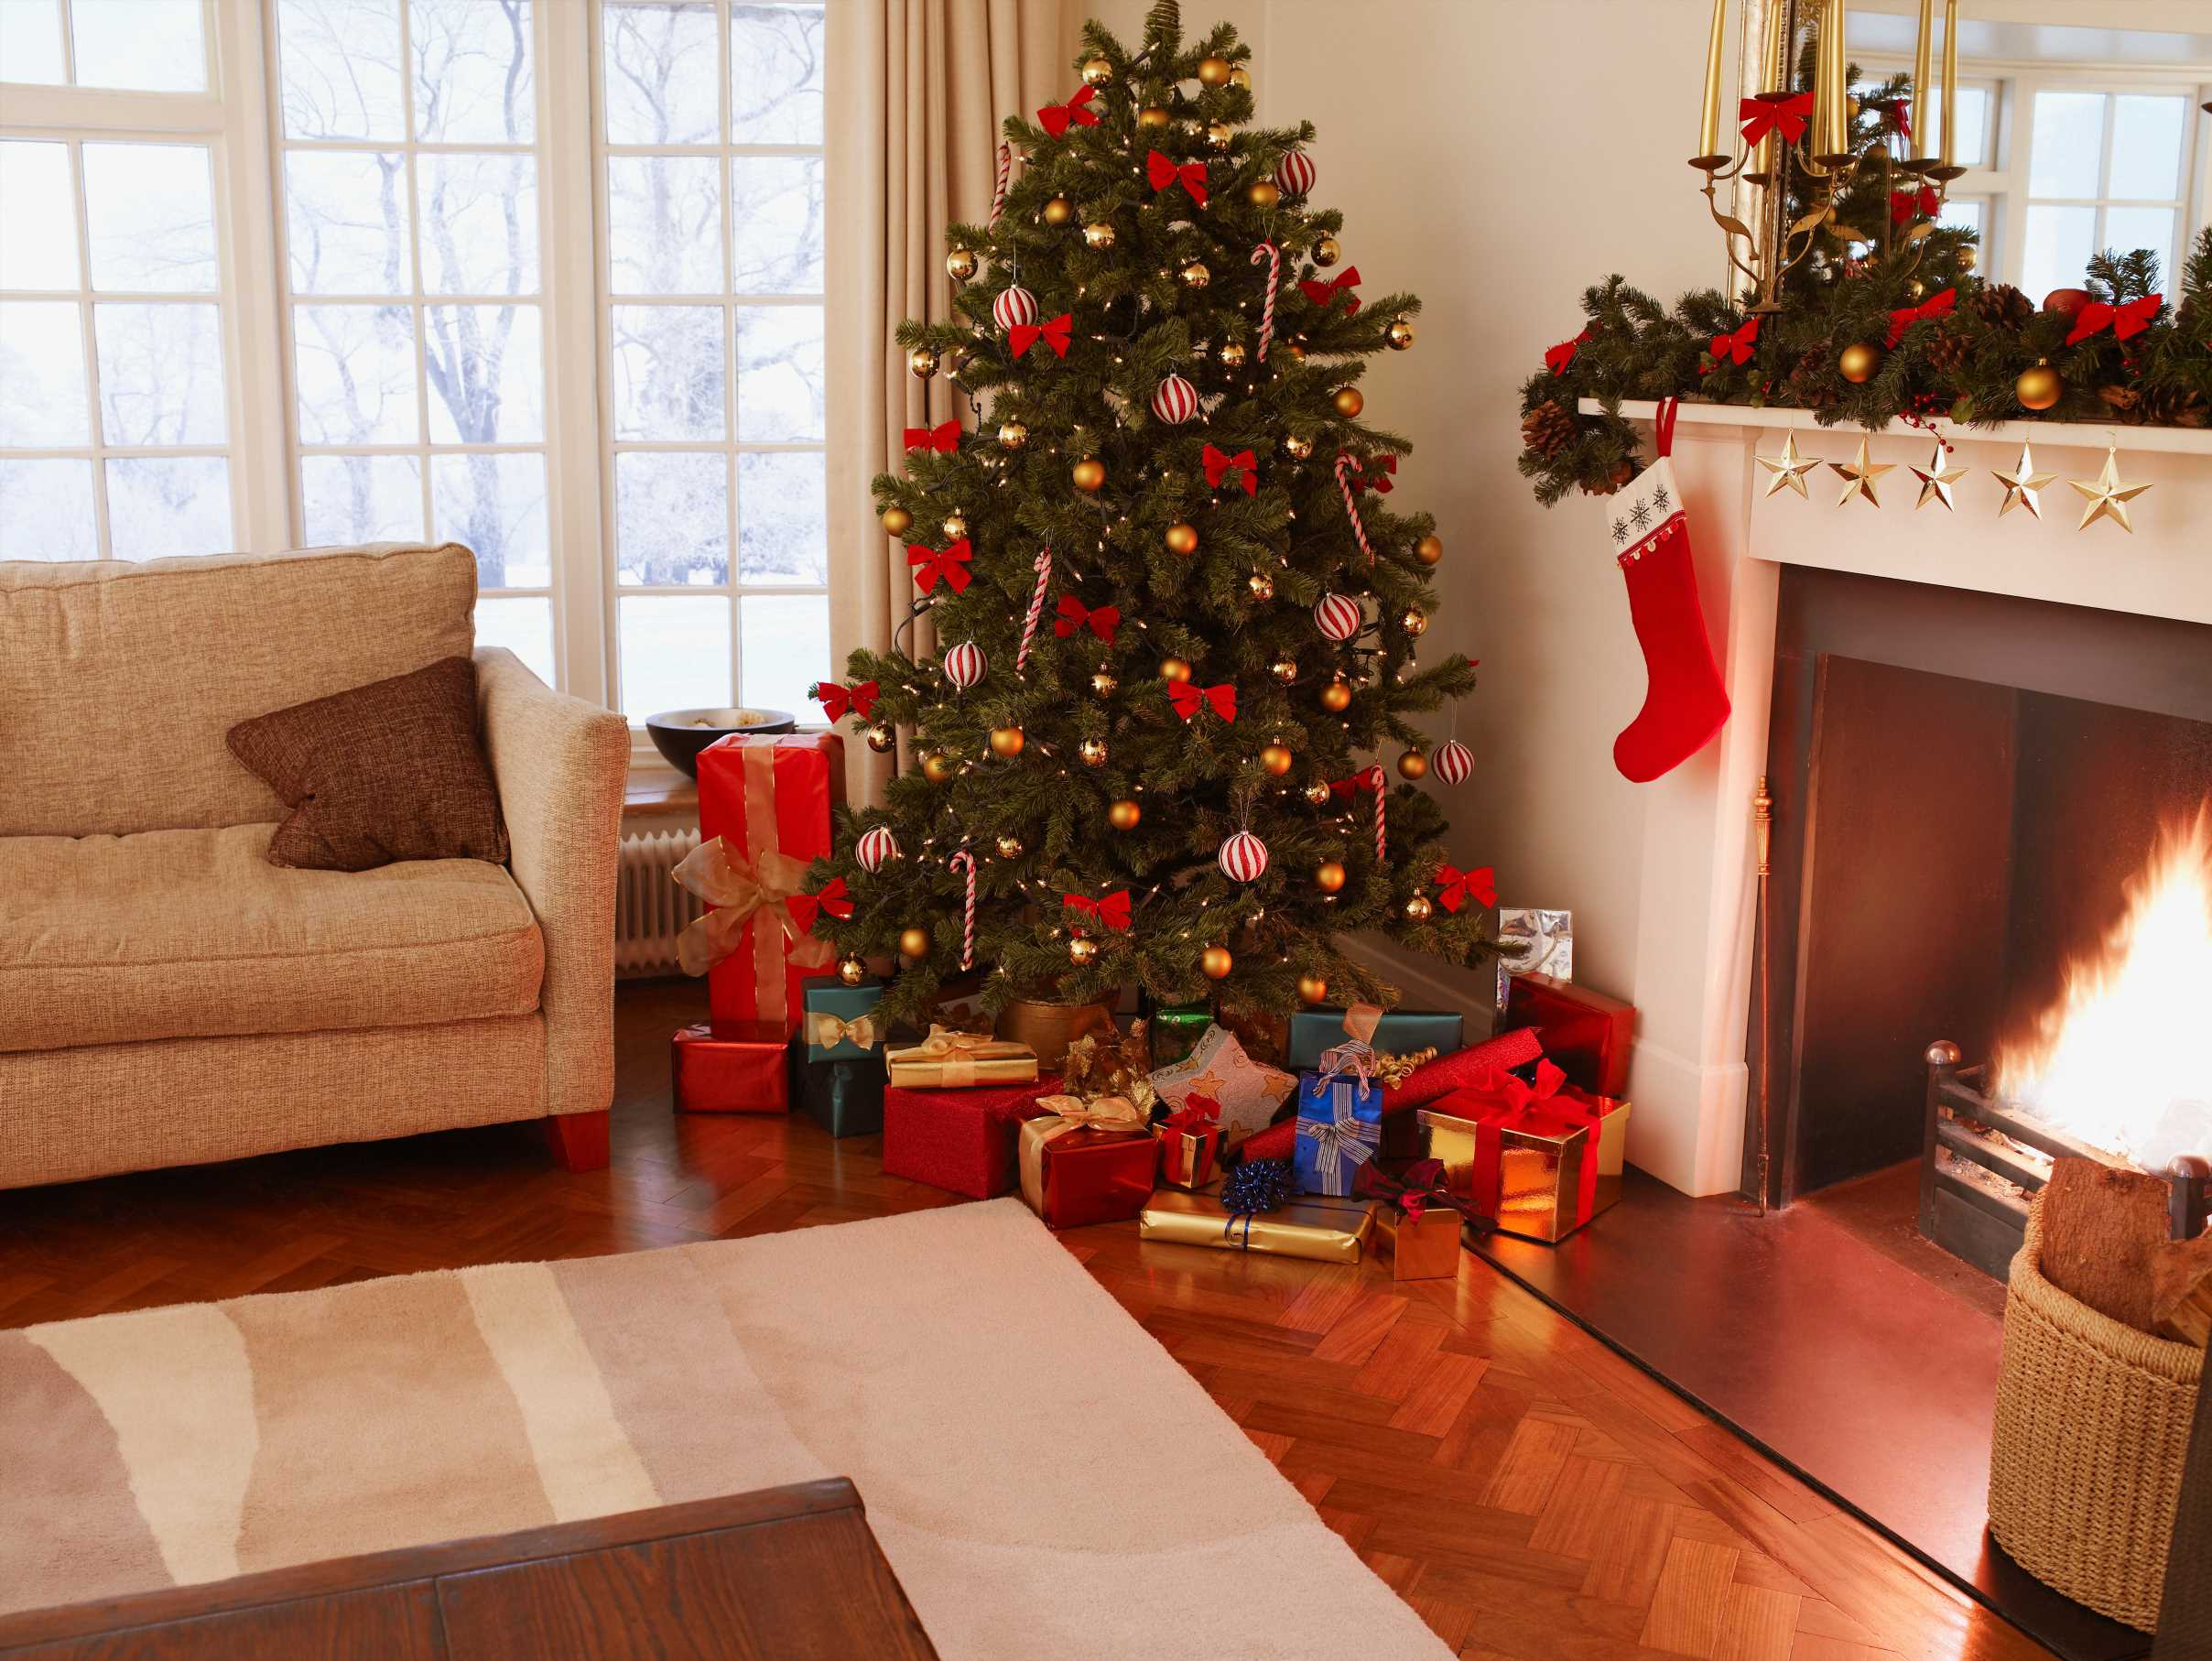 When is Boxing Day, why is it called that how is it traditionally celebrated and what are its origins?